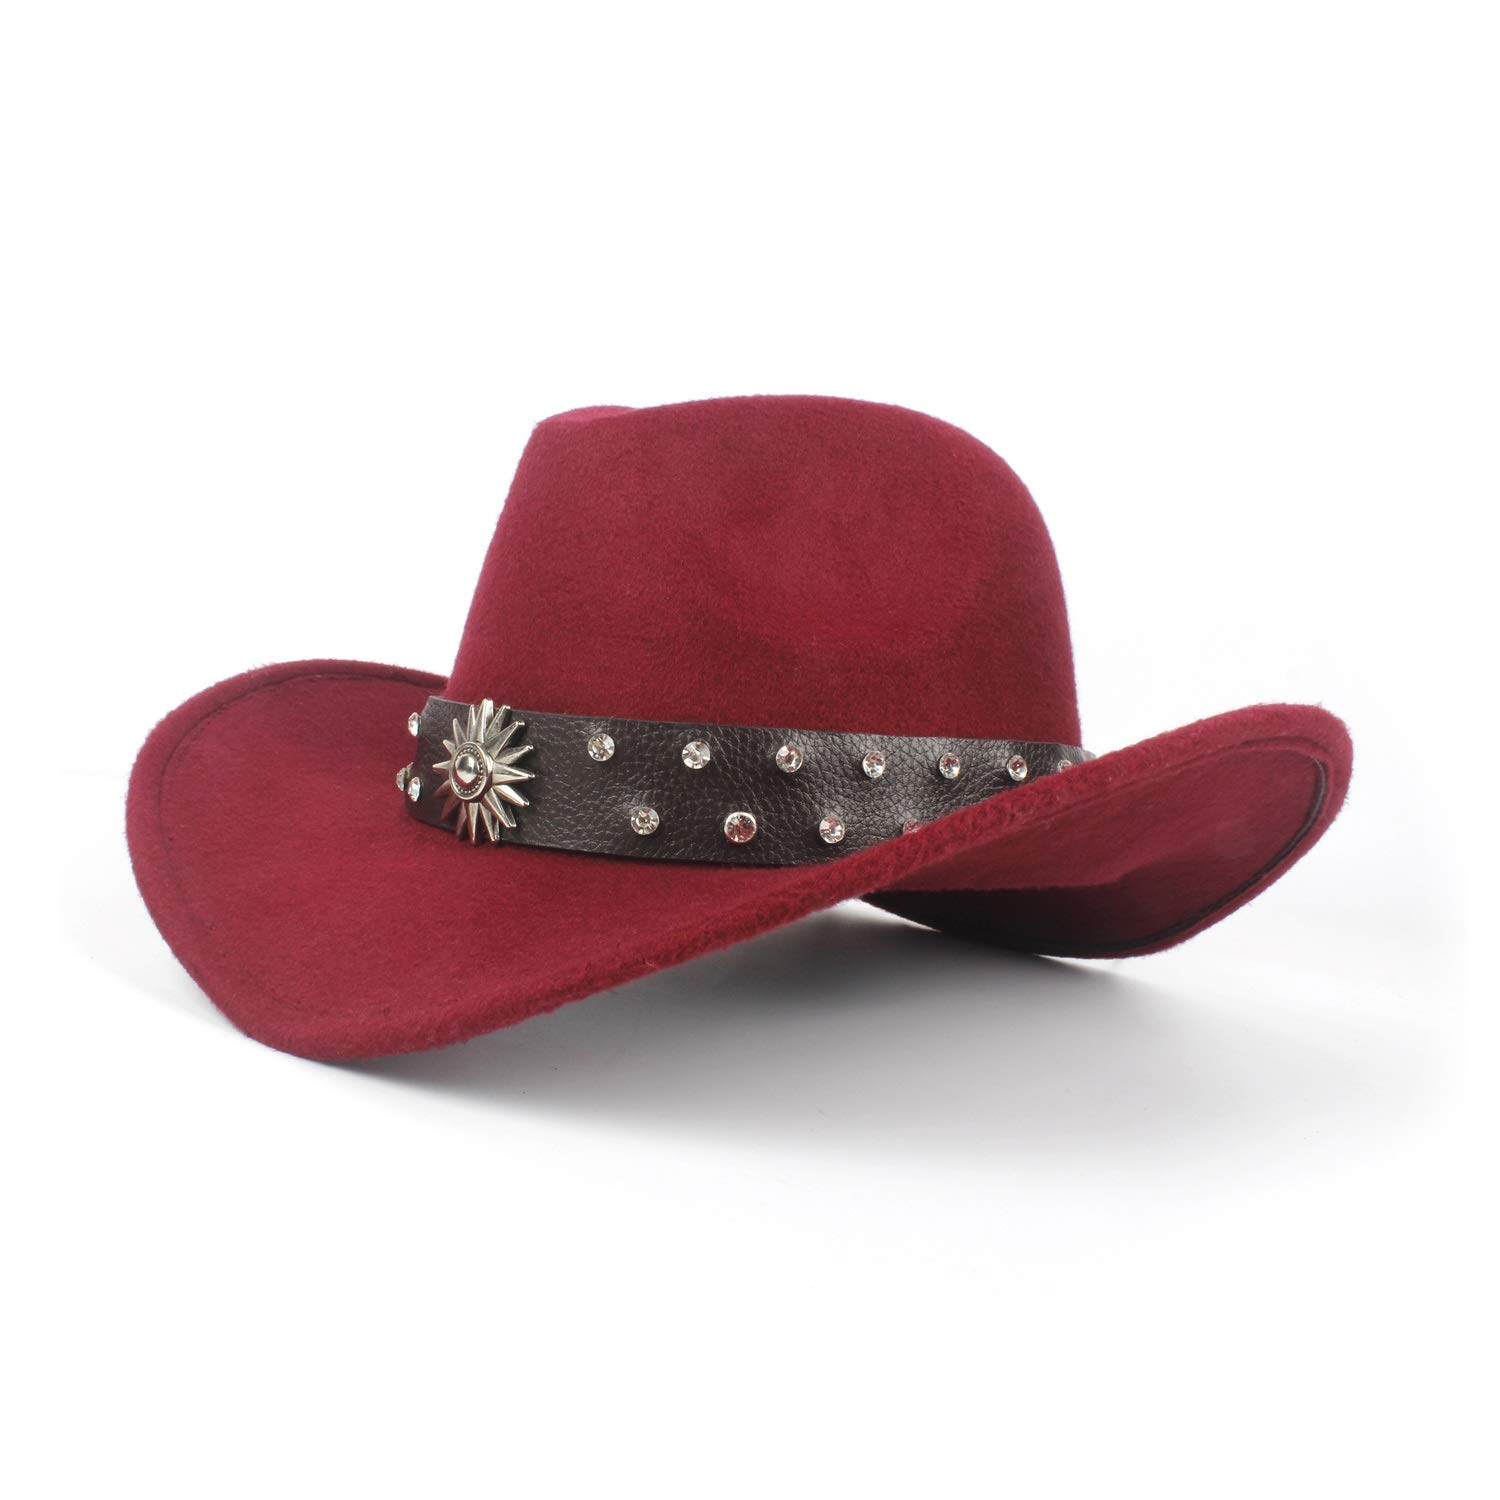 XIANGBAO-Hat Personality Fashion Mens Womens Western Cowboy Hat for Gentleman Dad Cowboy Hat Solid Diamond Hombre